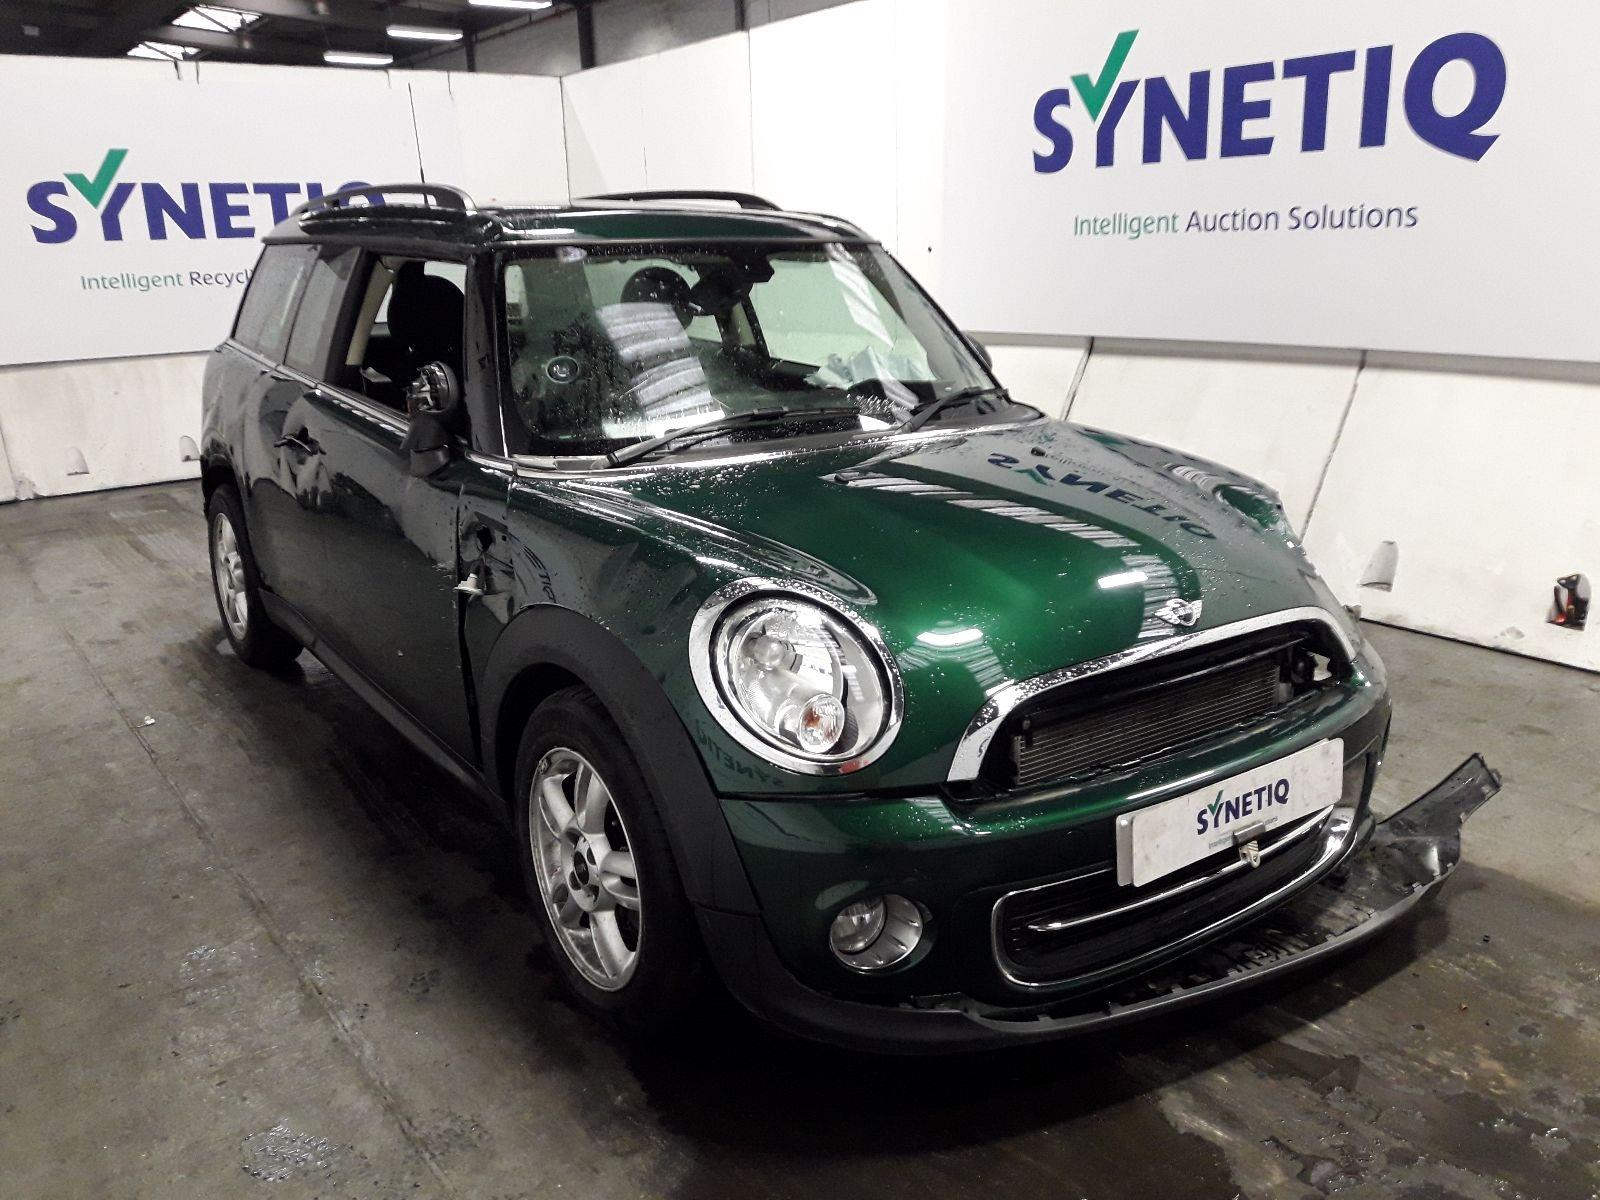 Synetiq Intelligent Solutions For Insurance Parts Salvage